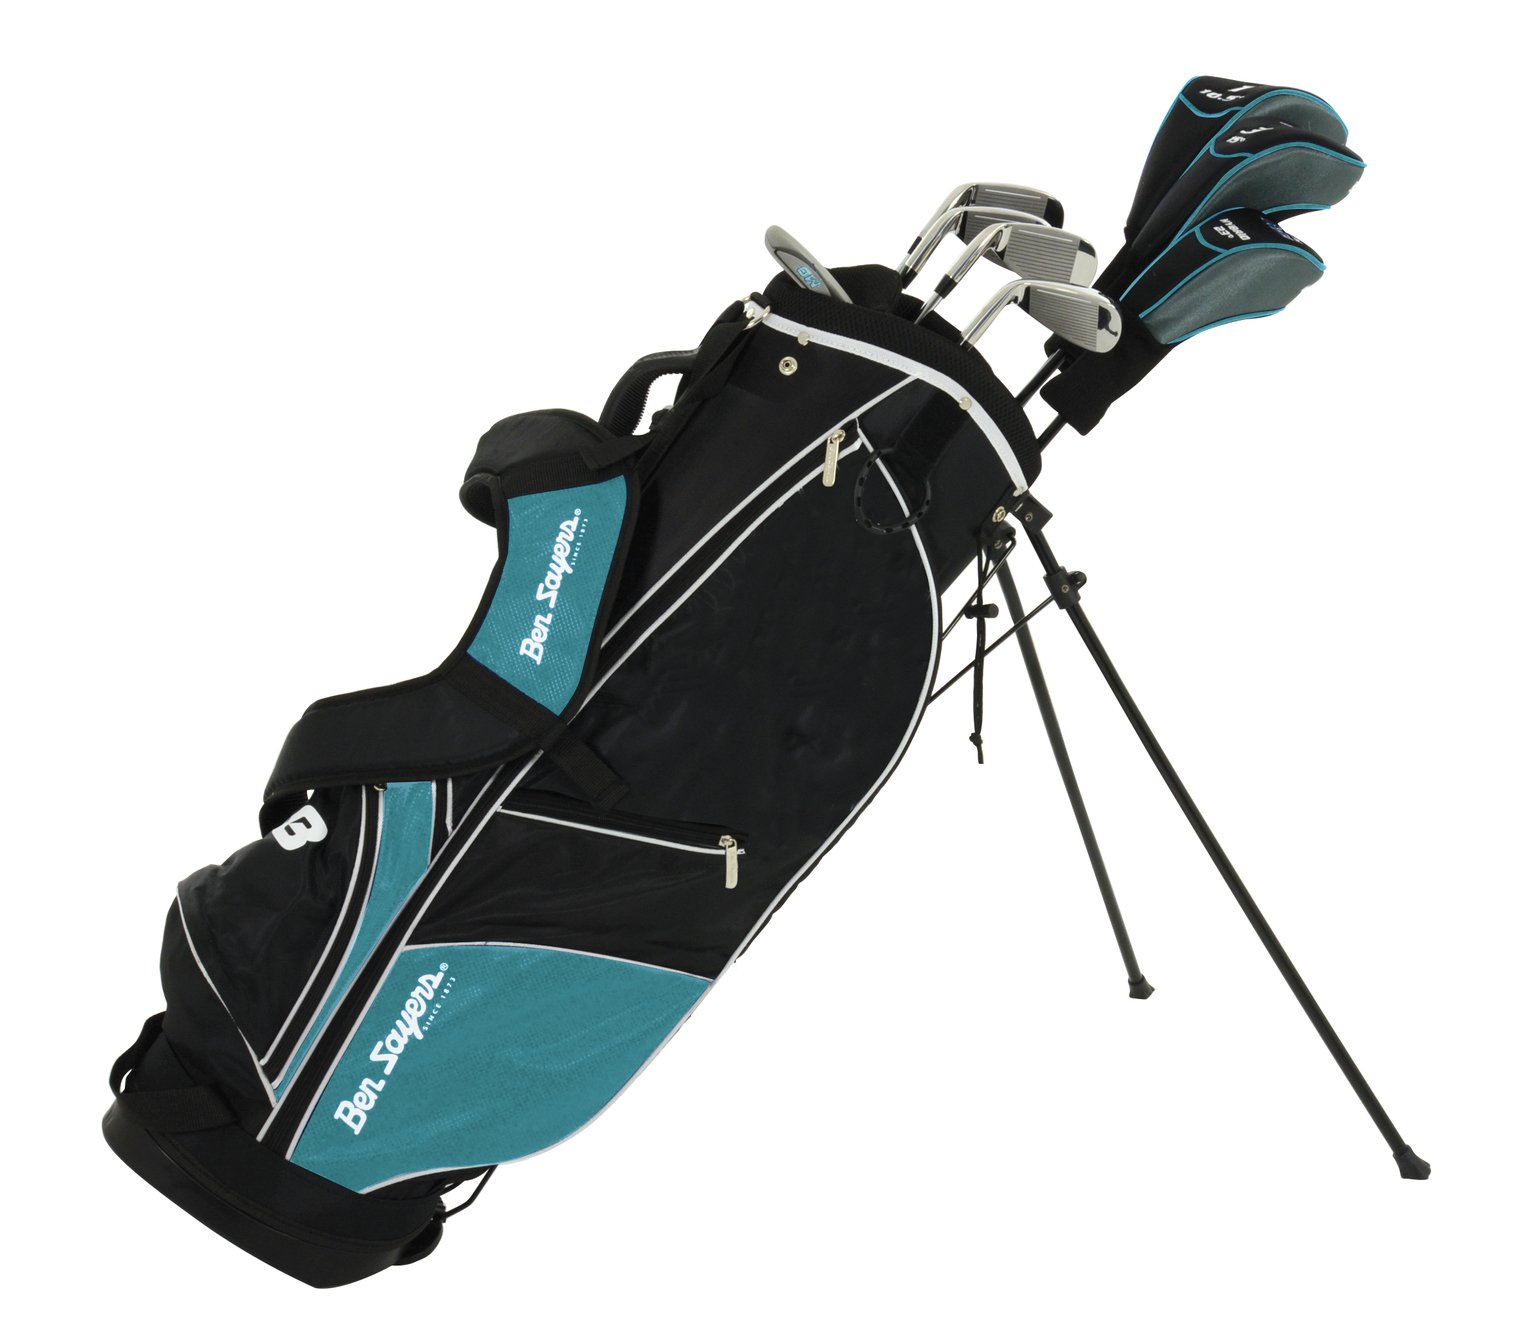 Ben Sayers M8 8 Gold Club Set and Stand Bag - Turquoise